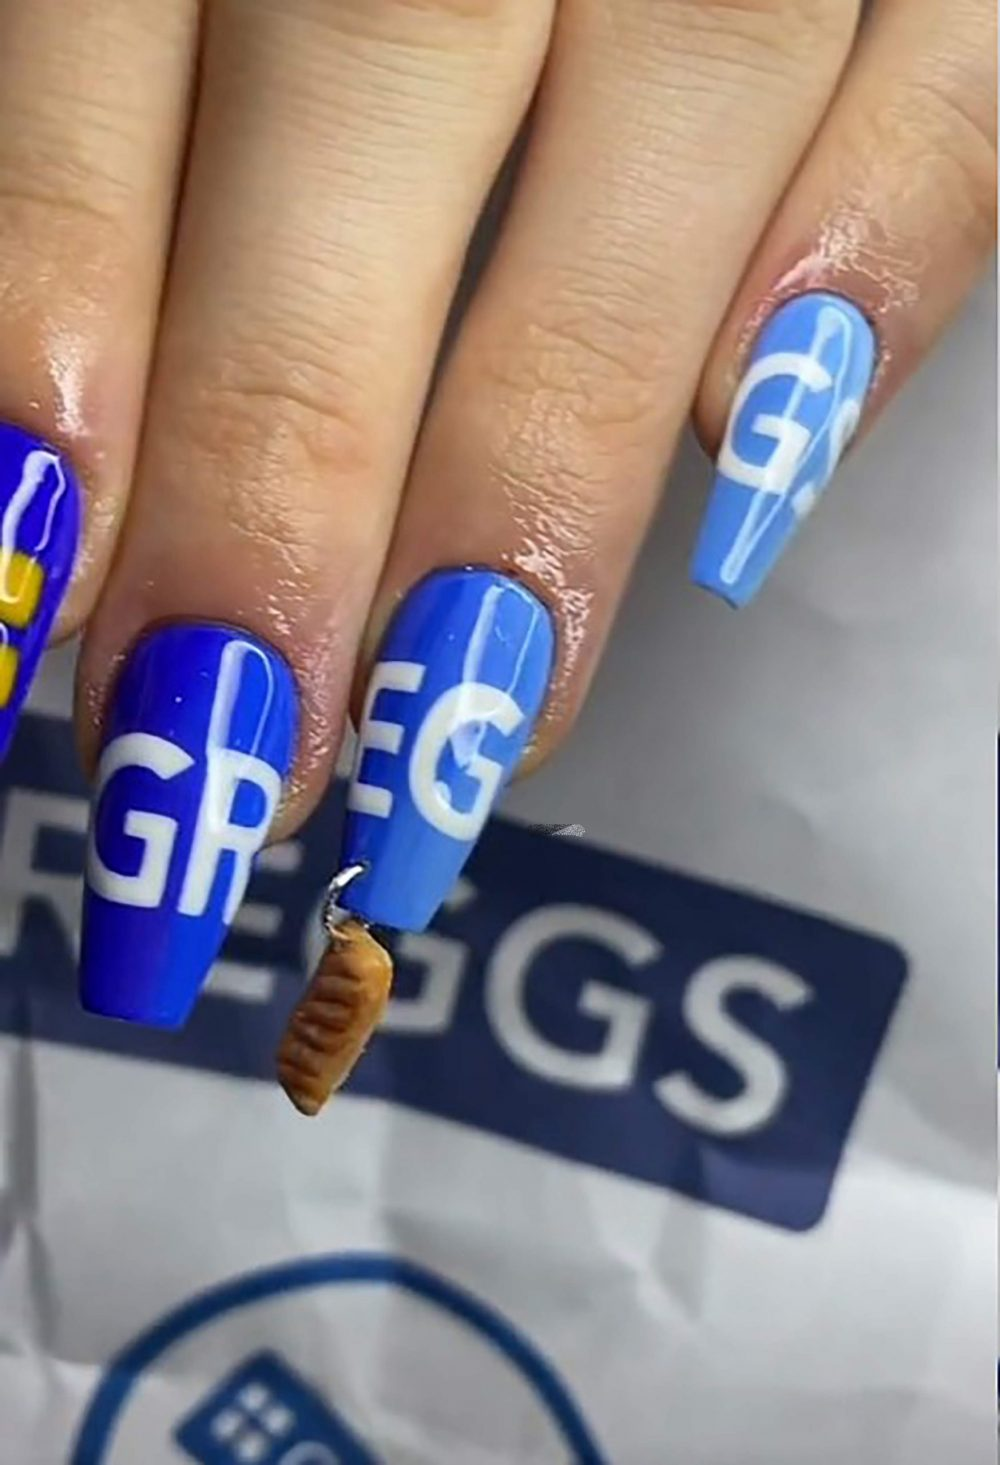 The quirky Greggs nails - UK News